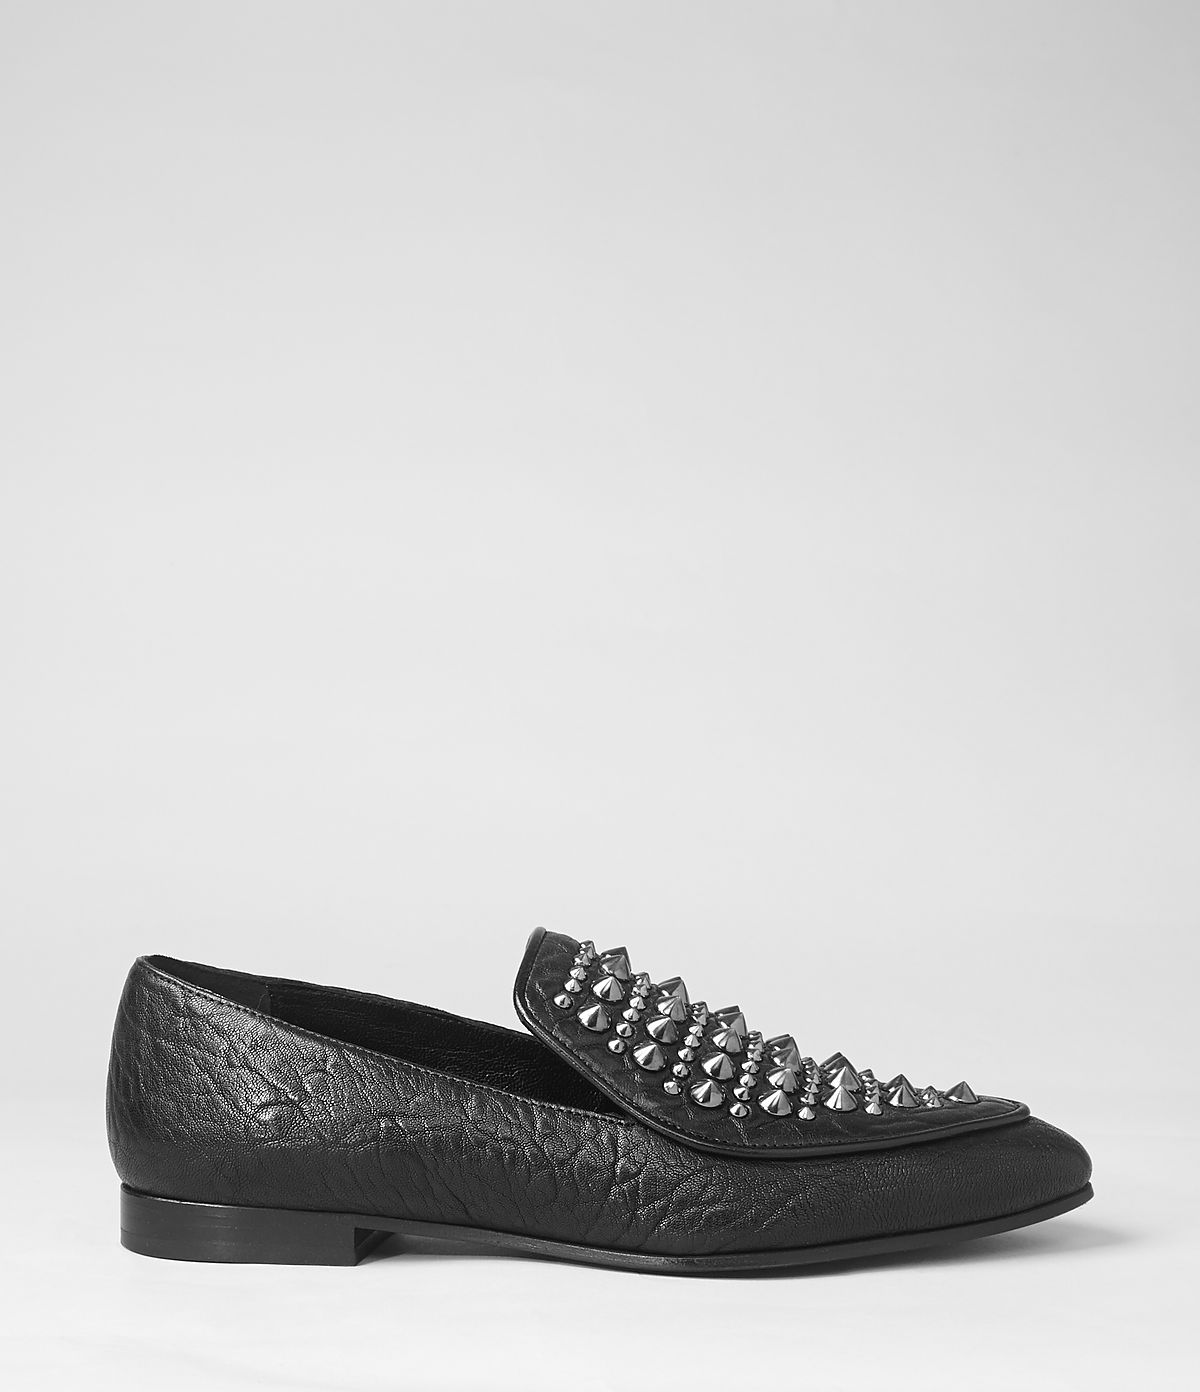 8c73b78a3a7 Lyst - AllSaints Keiko Studded Loafer in Black